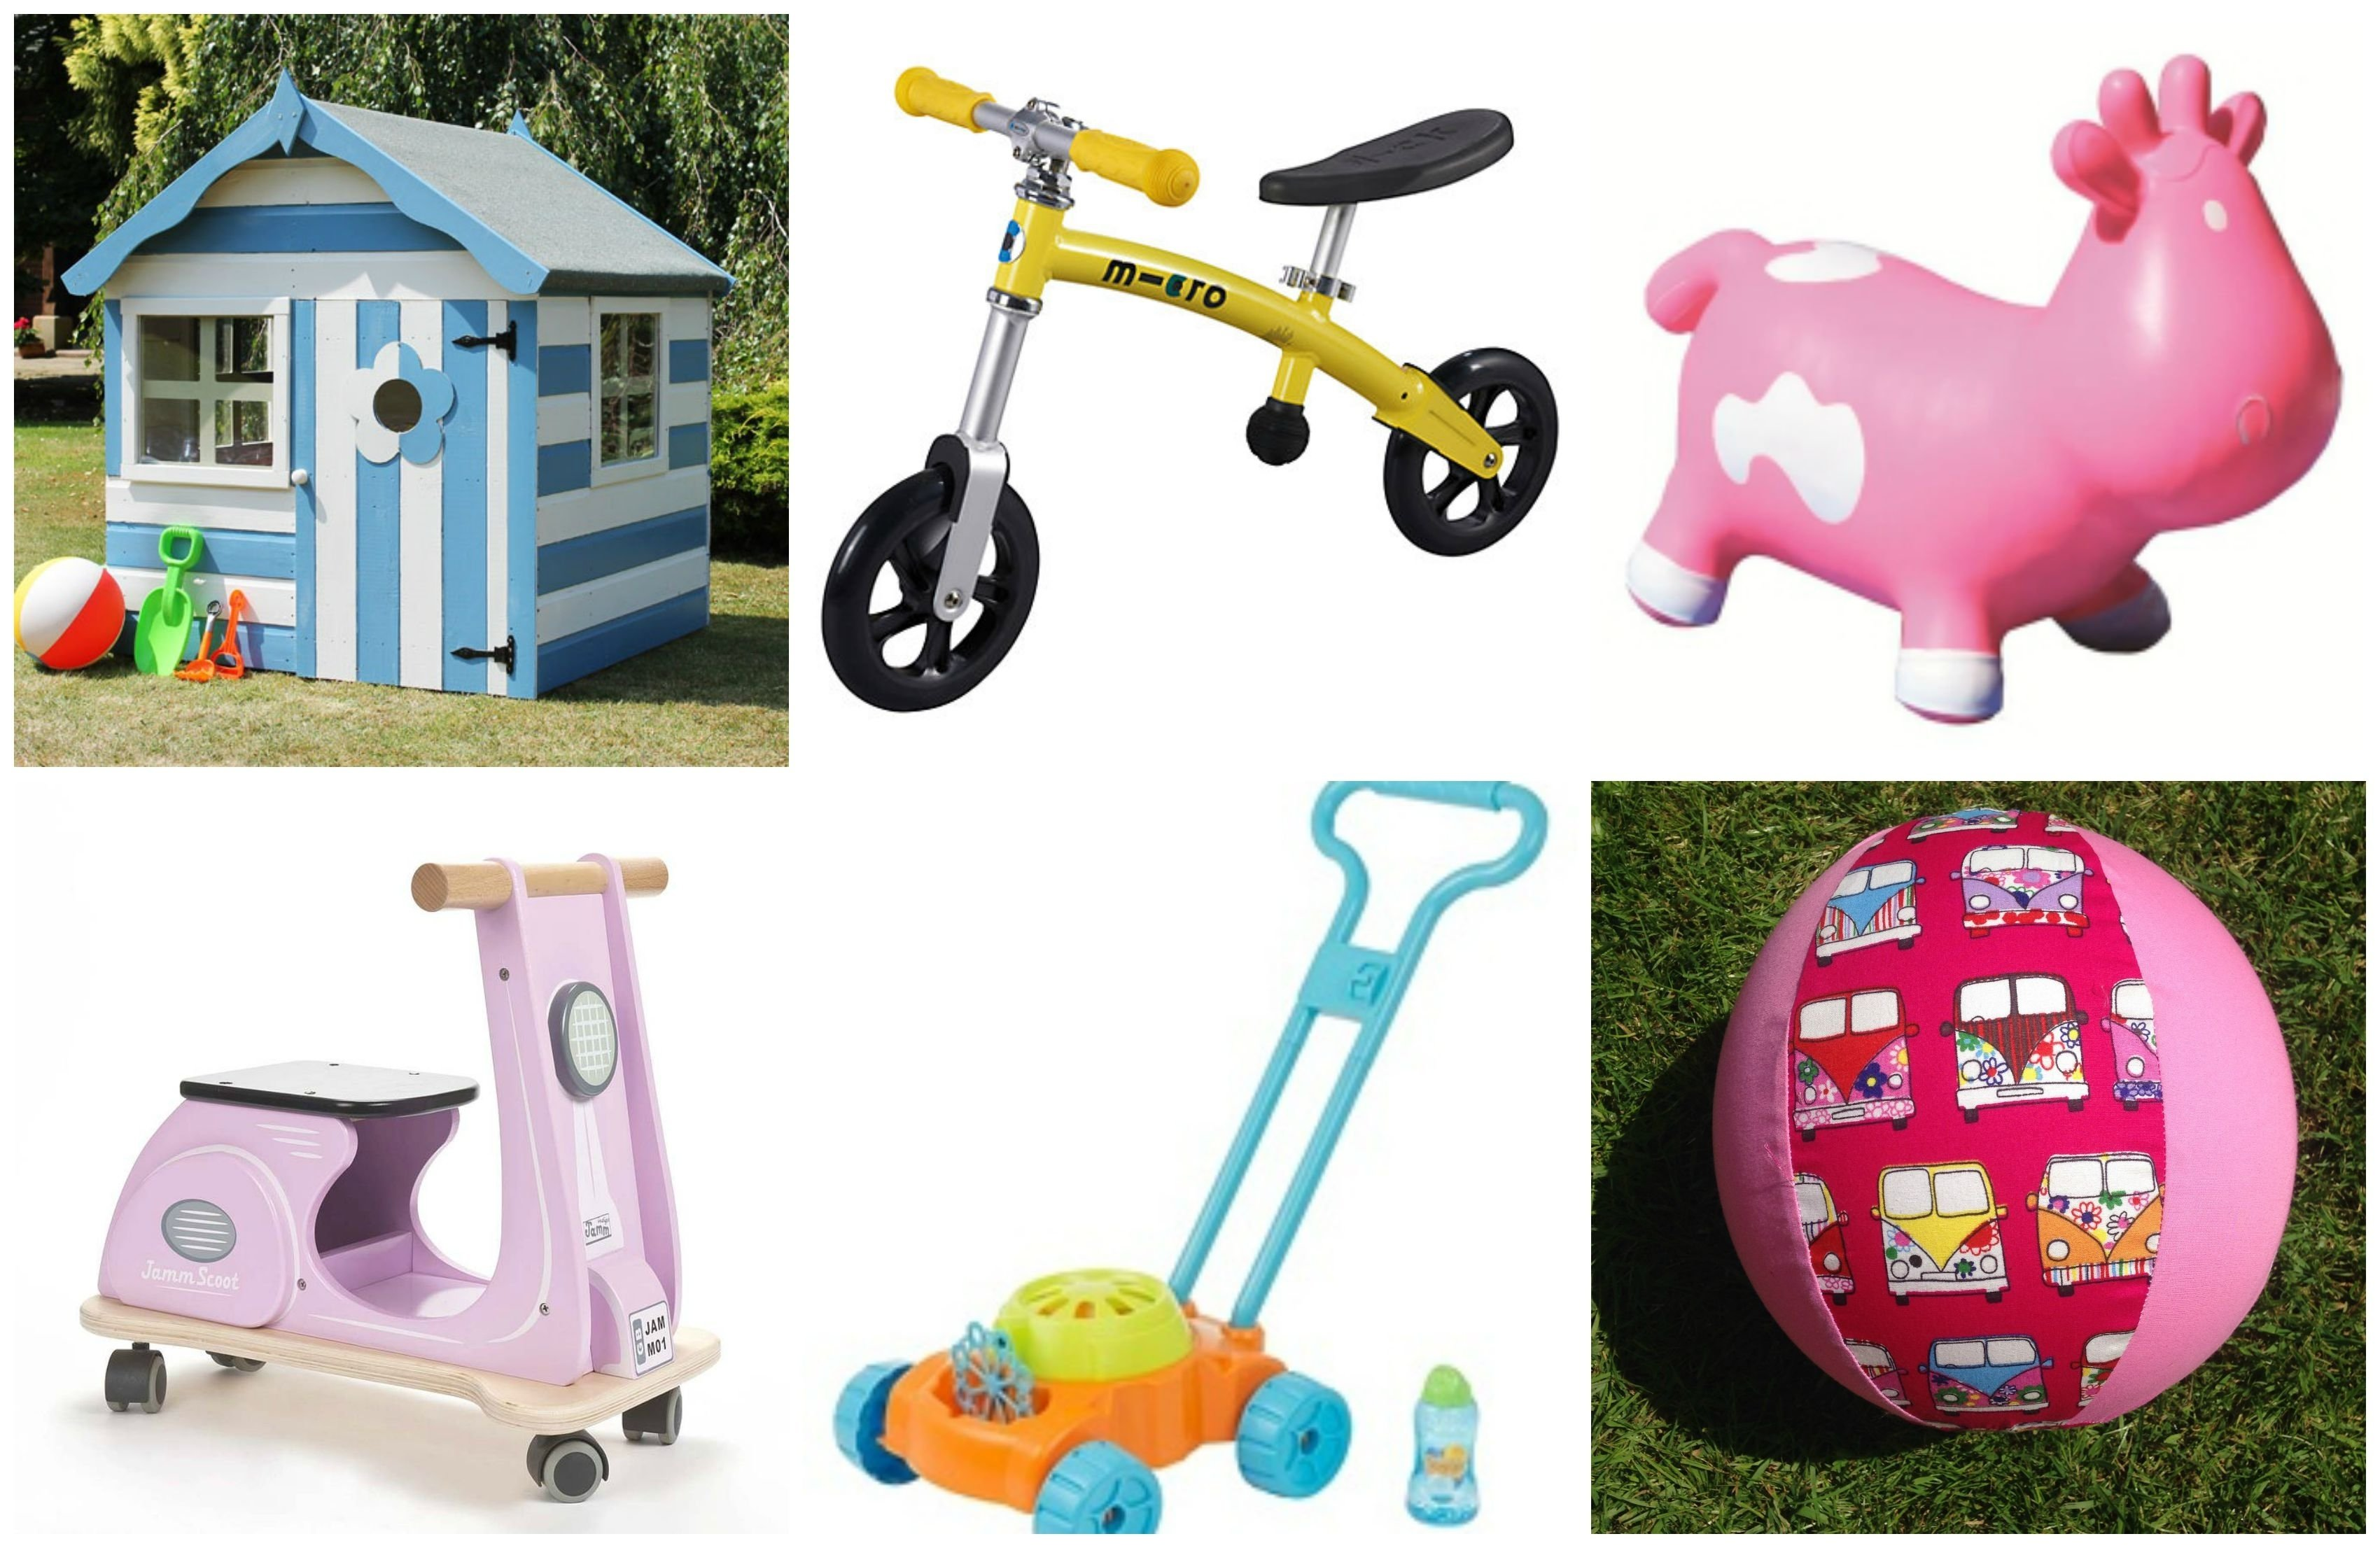 10 Gorgeous 2 Year Old Birthday Gift Ideas 2 year old birthday gift guide newyoungmum 5